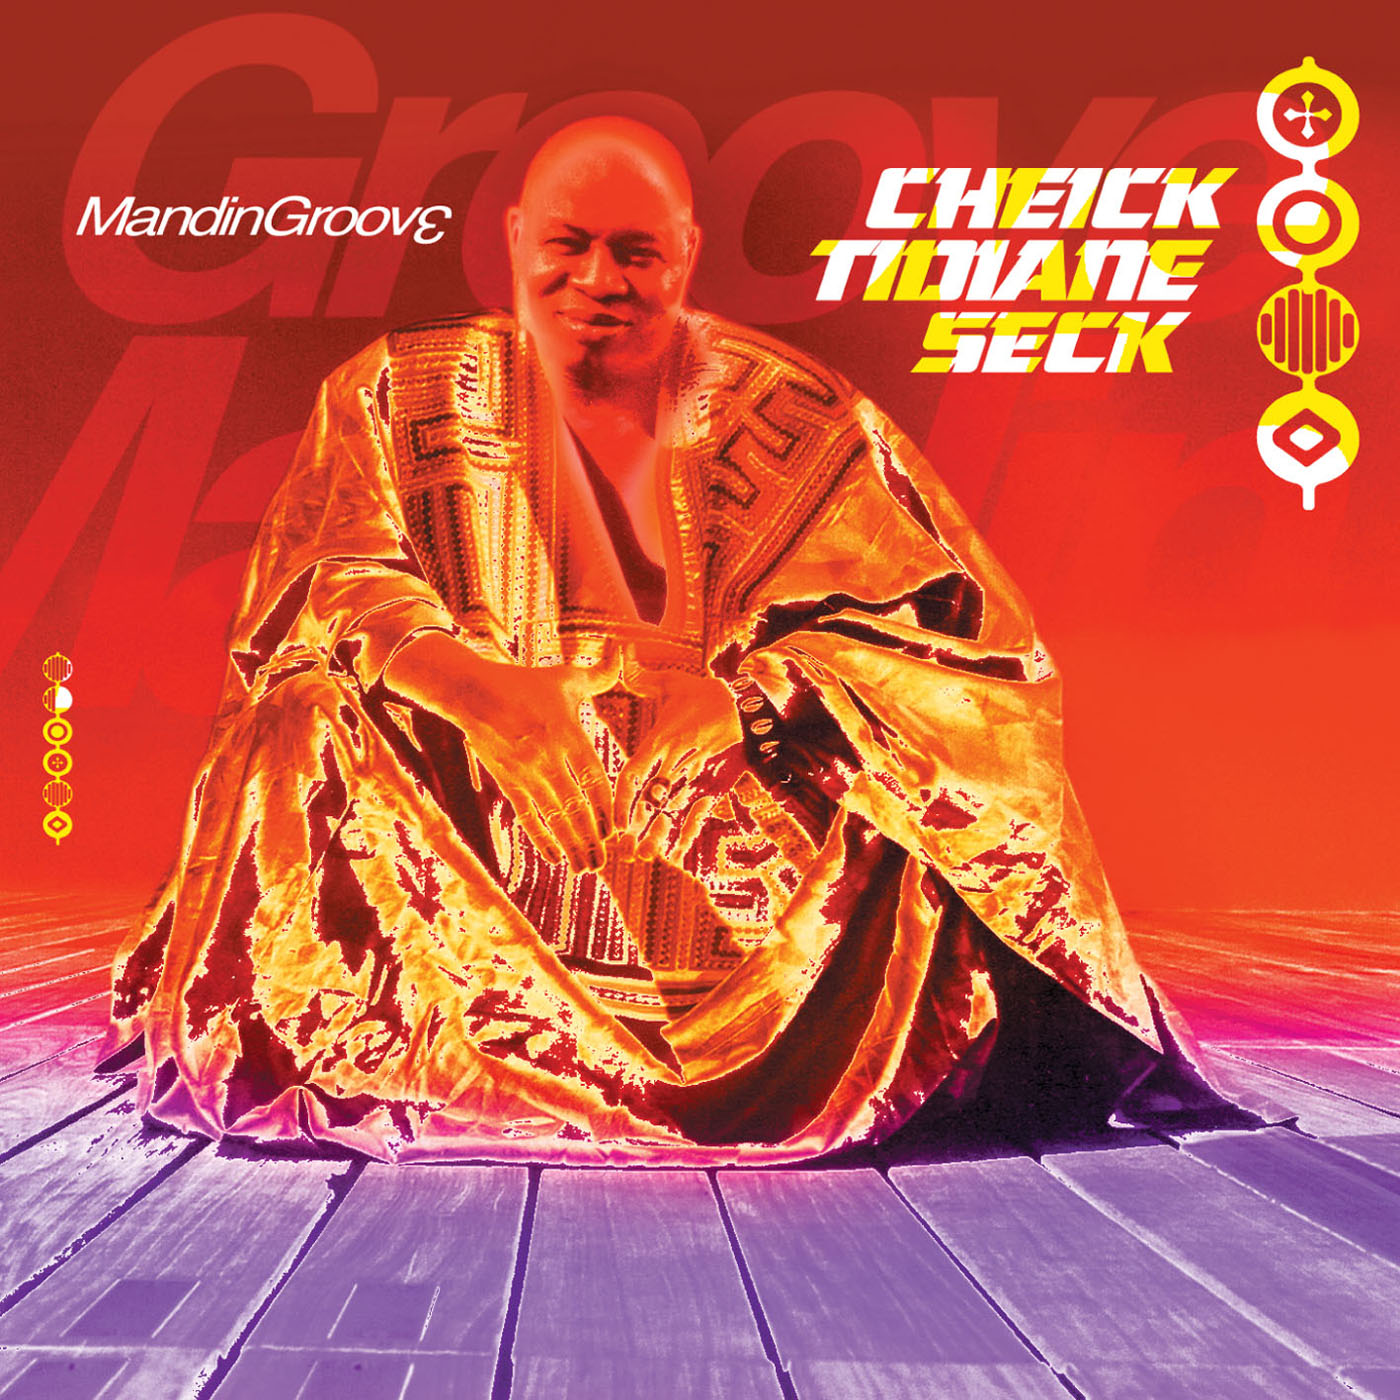 MandinGroove by Cheick Tidiane Seck cover